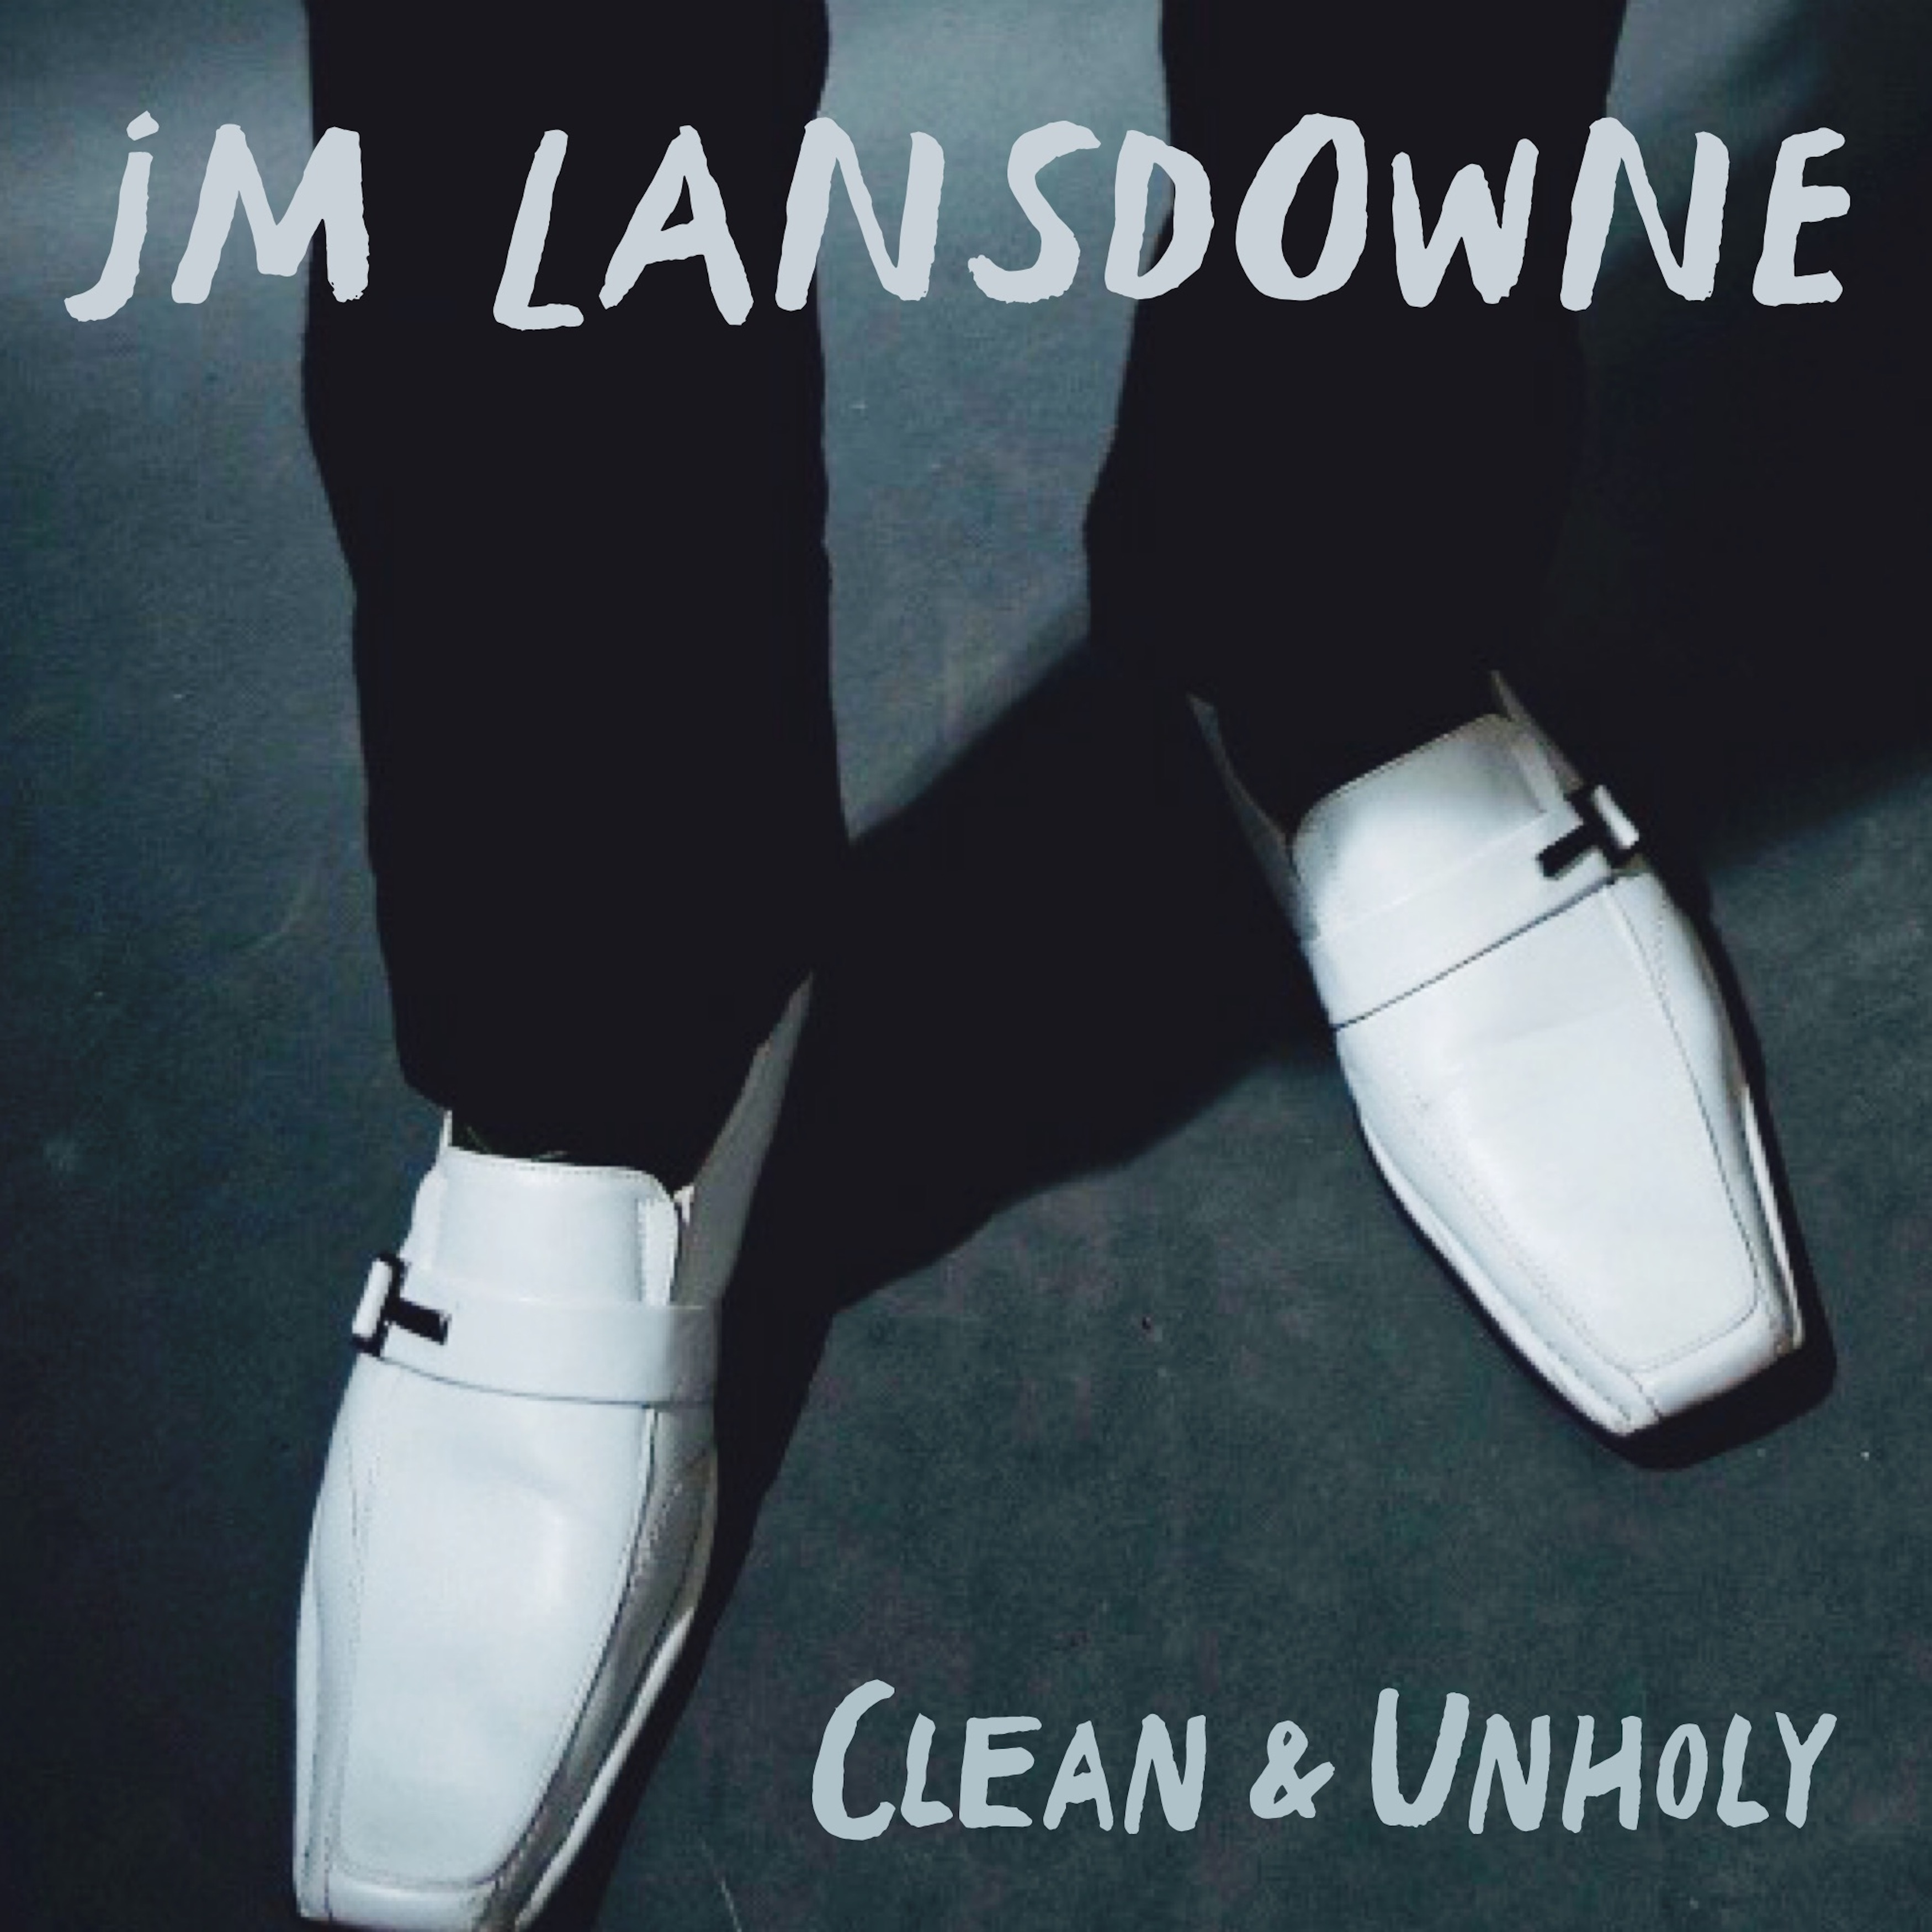 JM LANSDOWNE - CLEAN AND UNHOLY